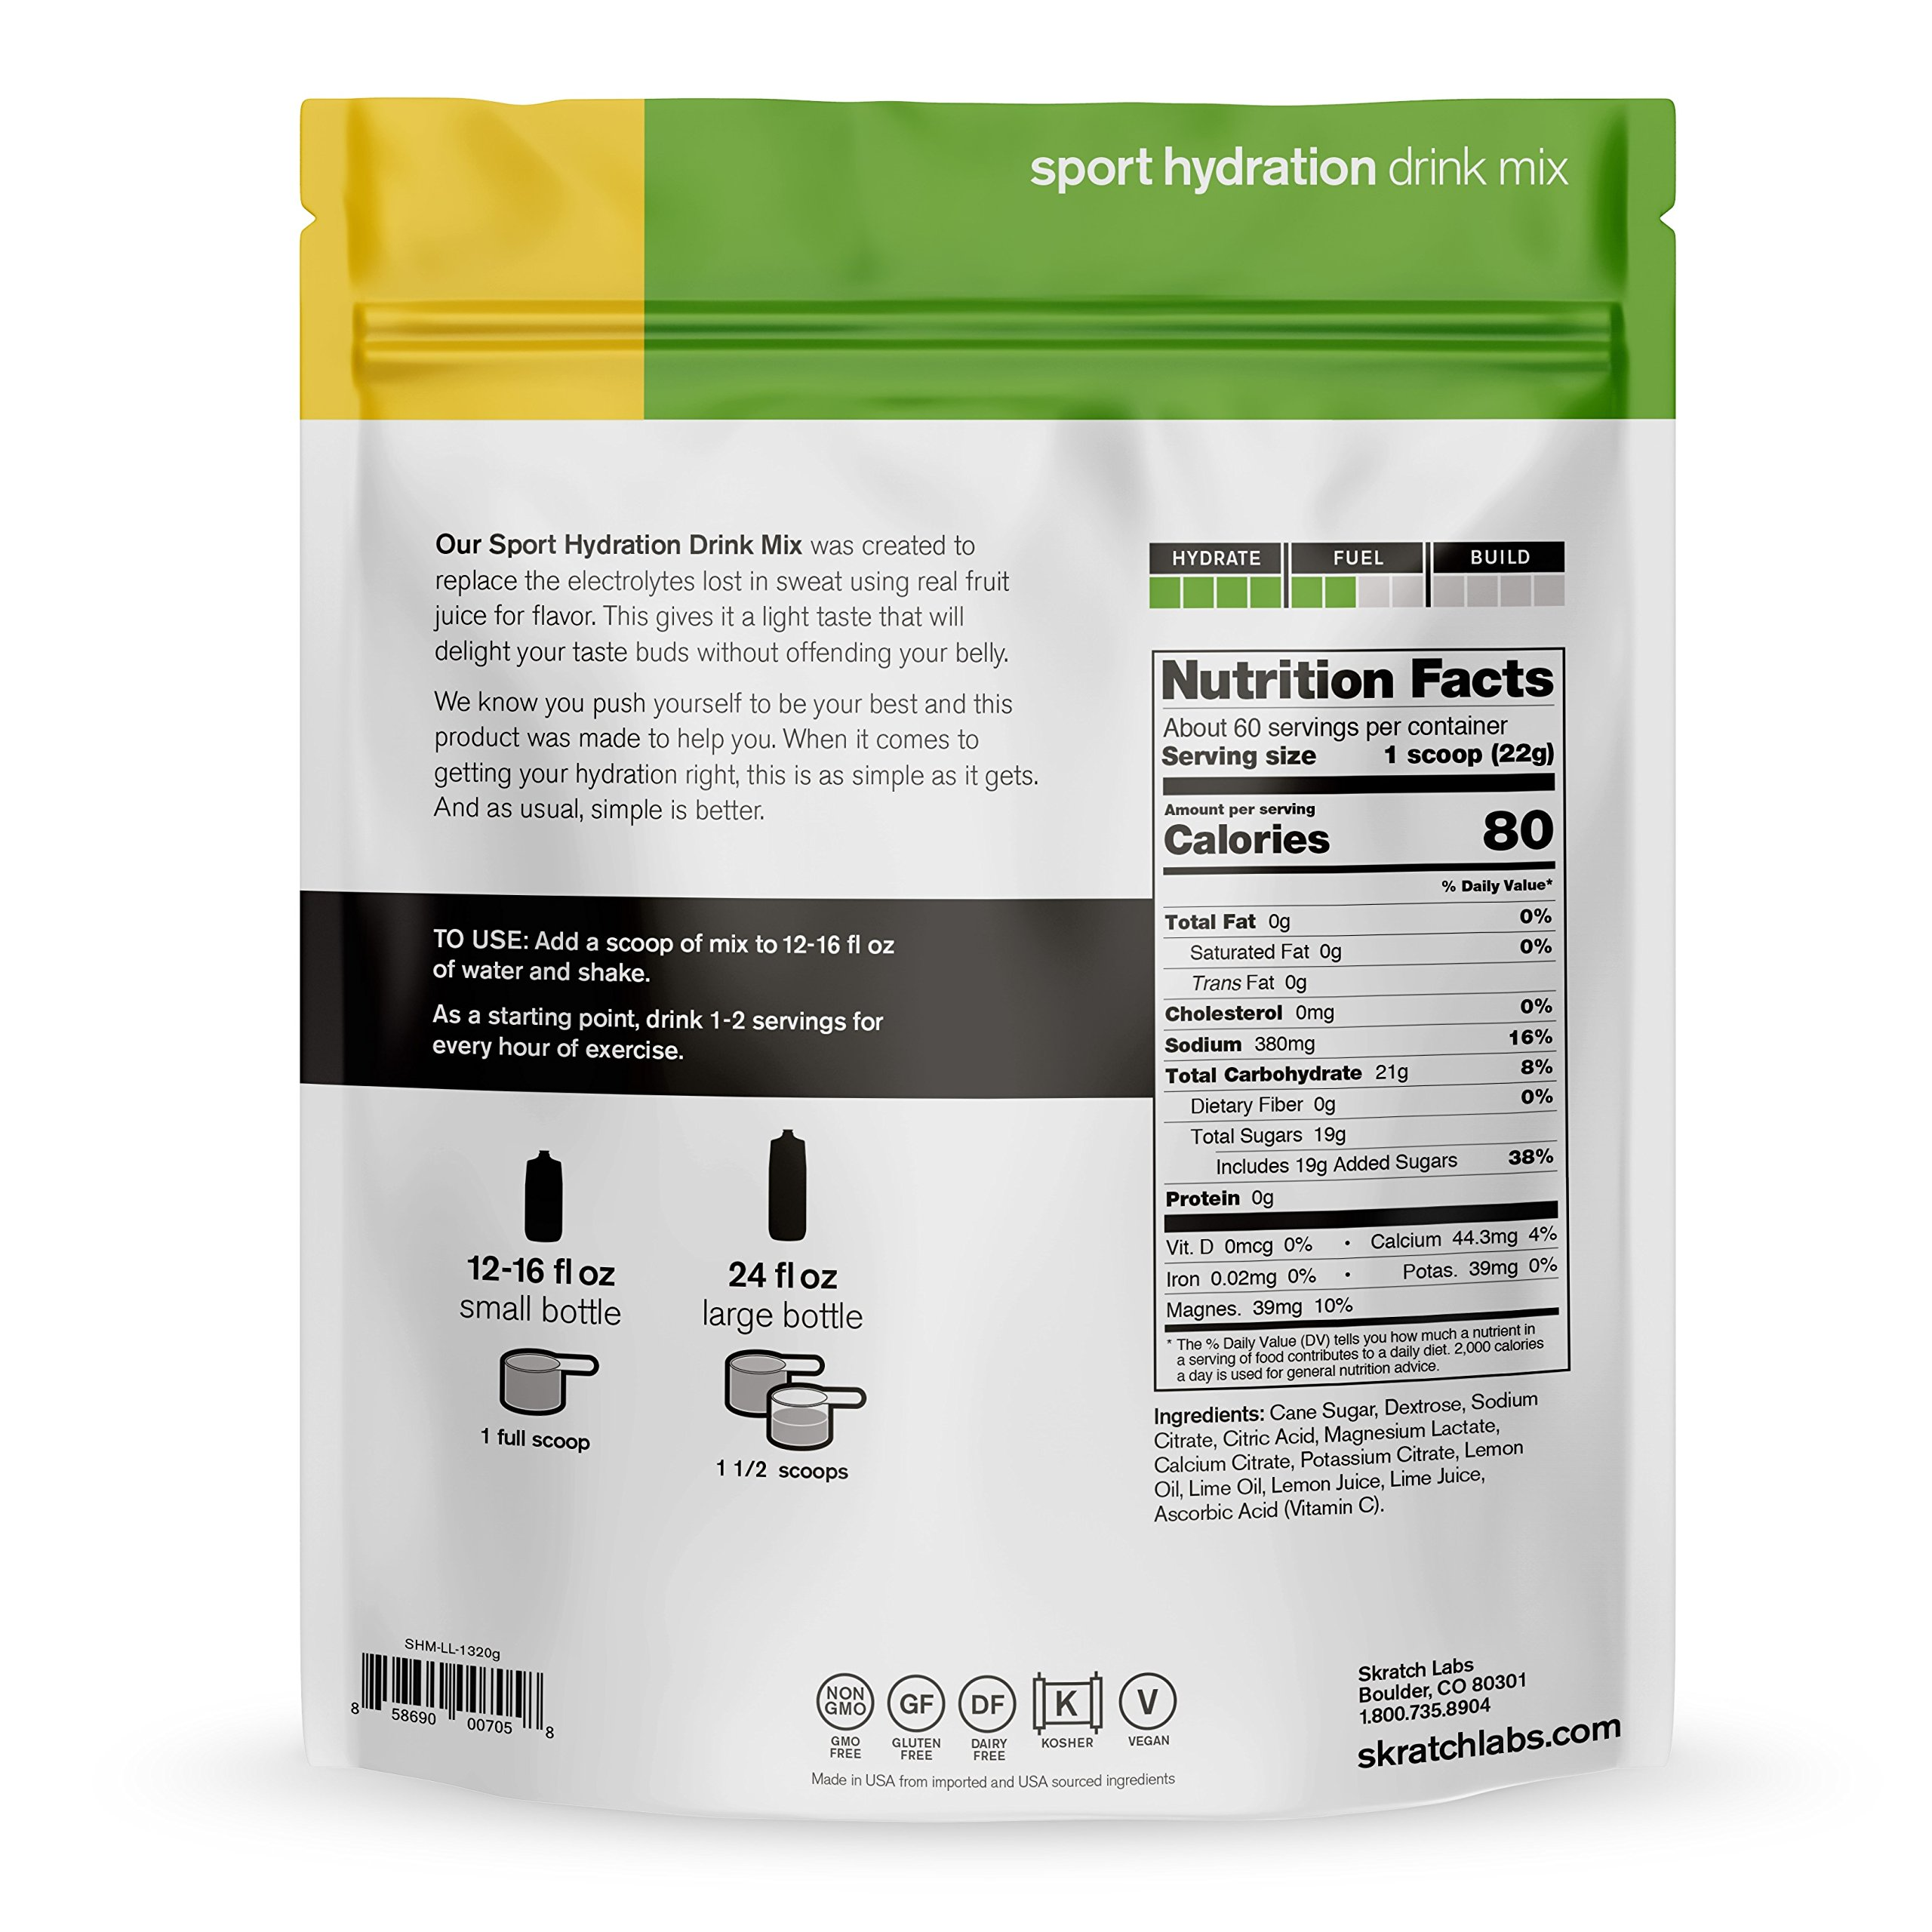 SKRATCH LABS Sport Hydration Drink Mix, Lemon Lime (46.5 oz, 60 servings) - Natural, Electrolyte Powder Developed for Athletes and Sports Performance, Gluten Free, Vegan, Kosher by Skratch Labs (Image #2)